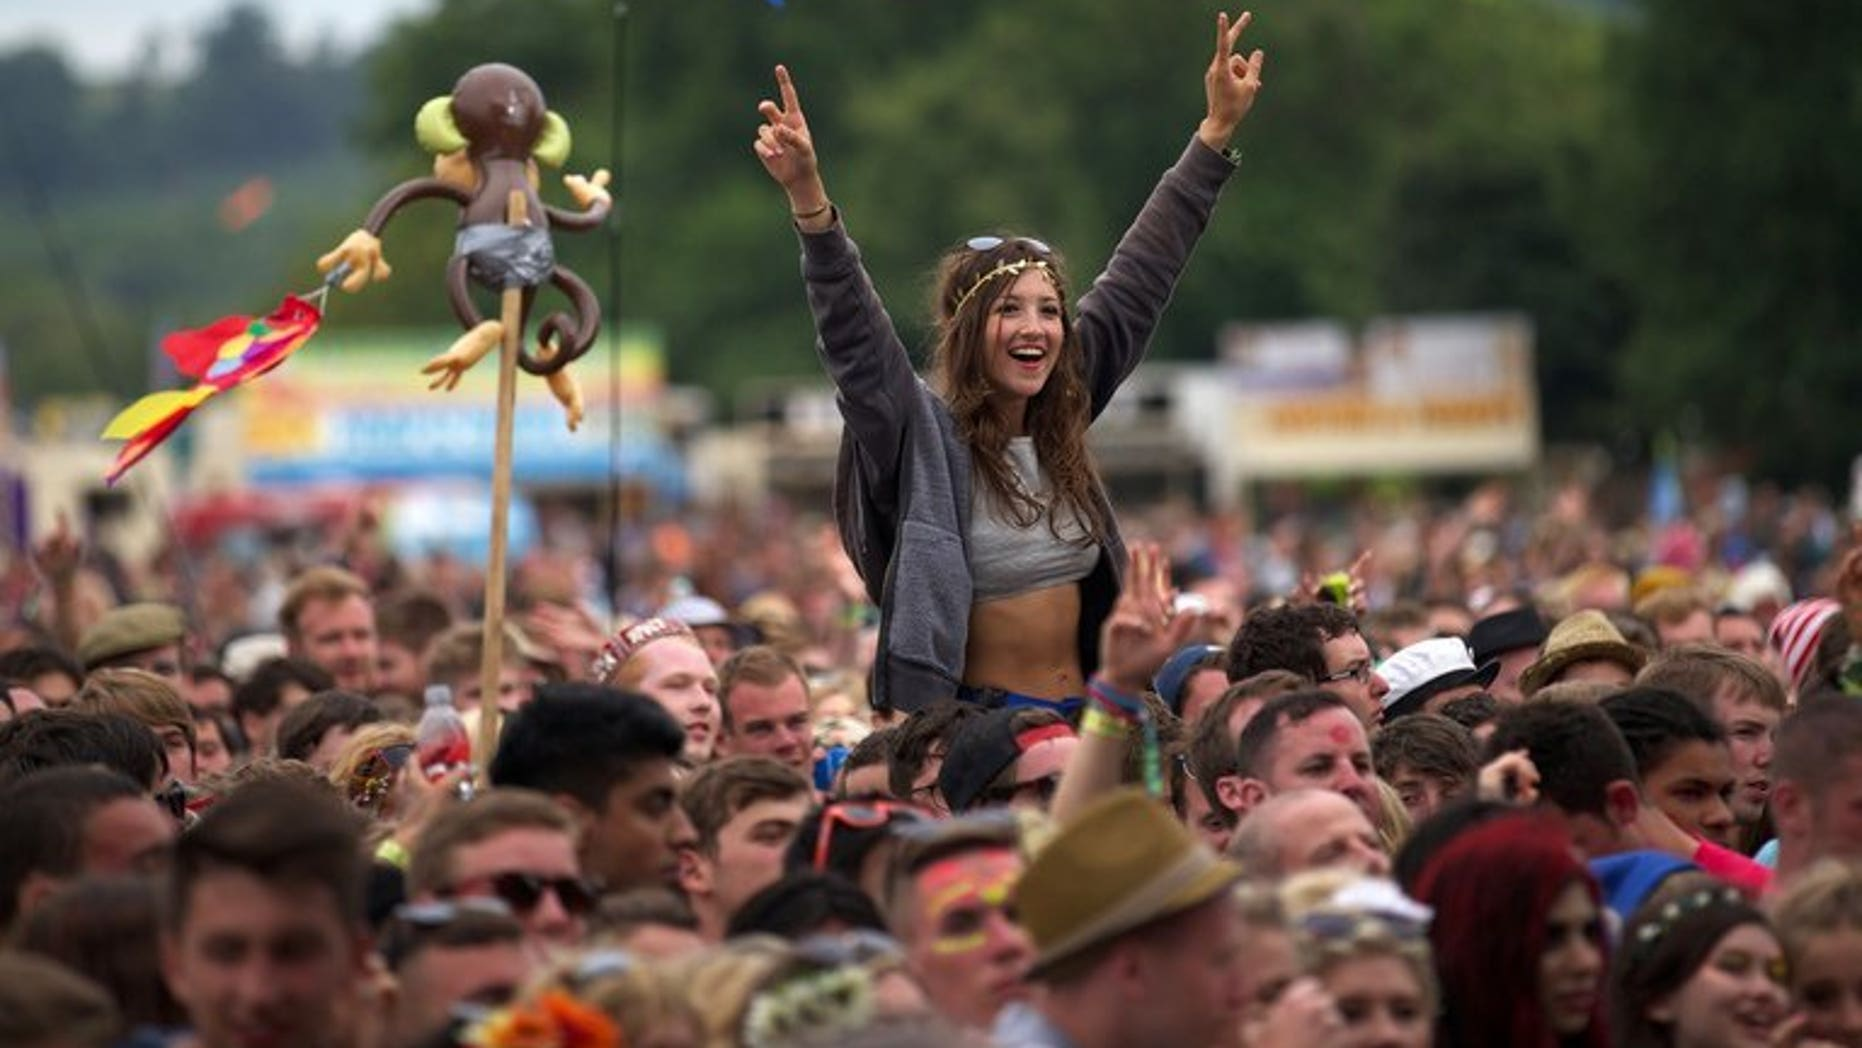 Festival goers attend concerts at the Pyramid Stage at the Glastonbury Festival, southwest England, on June 28, 2013. Tens of thousands of people braved the traditional swamp of mud to watch the first acts of the Glastonbury festival, starting with Liam Gallagher's band and culminating in a vintage performance from Arctic Monkeys.